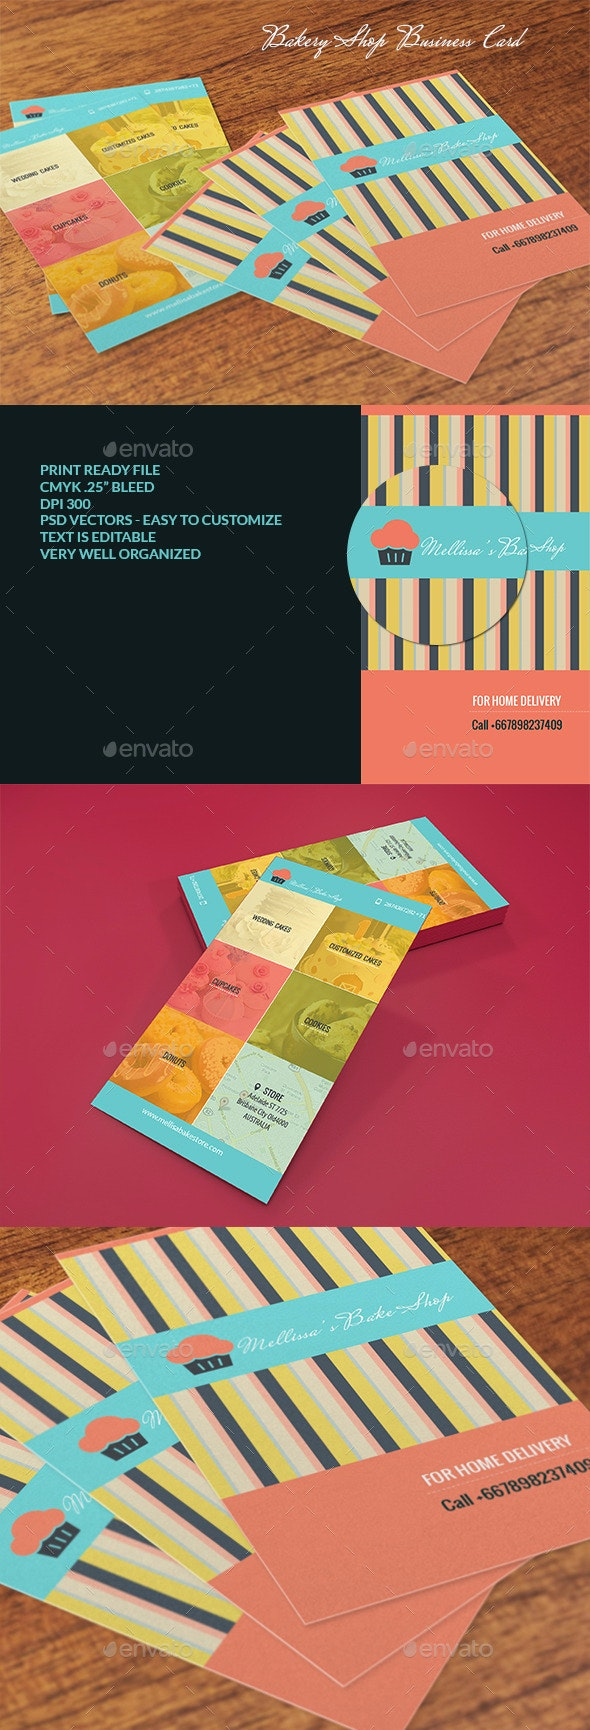 Bakery Shop Business Card - Business Cards Print Templates